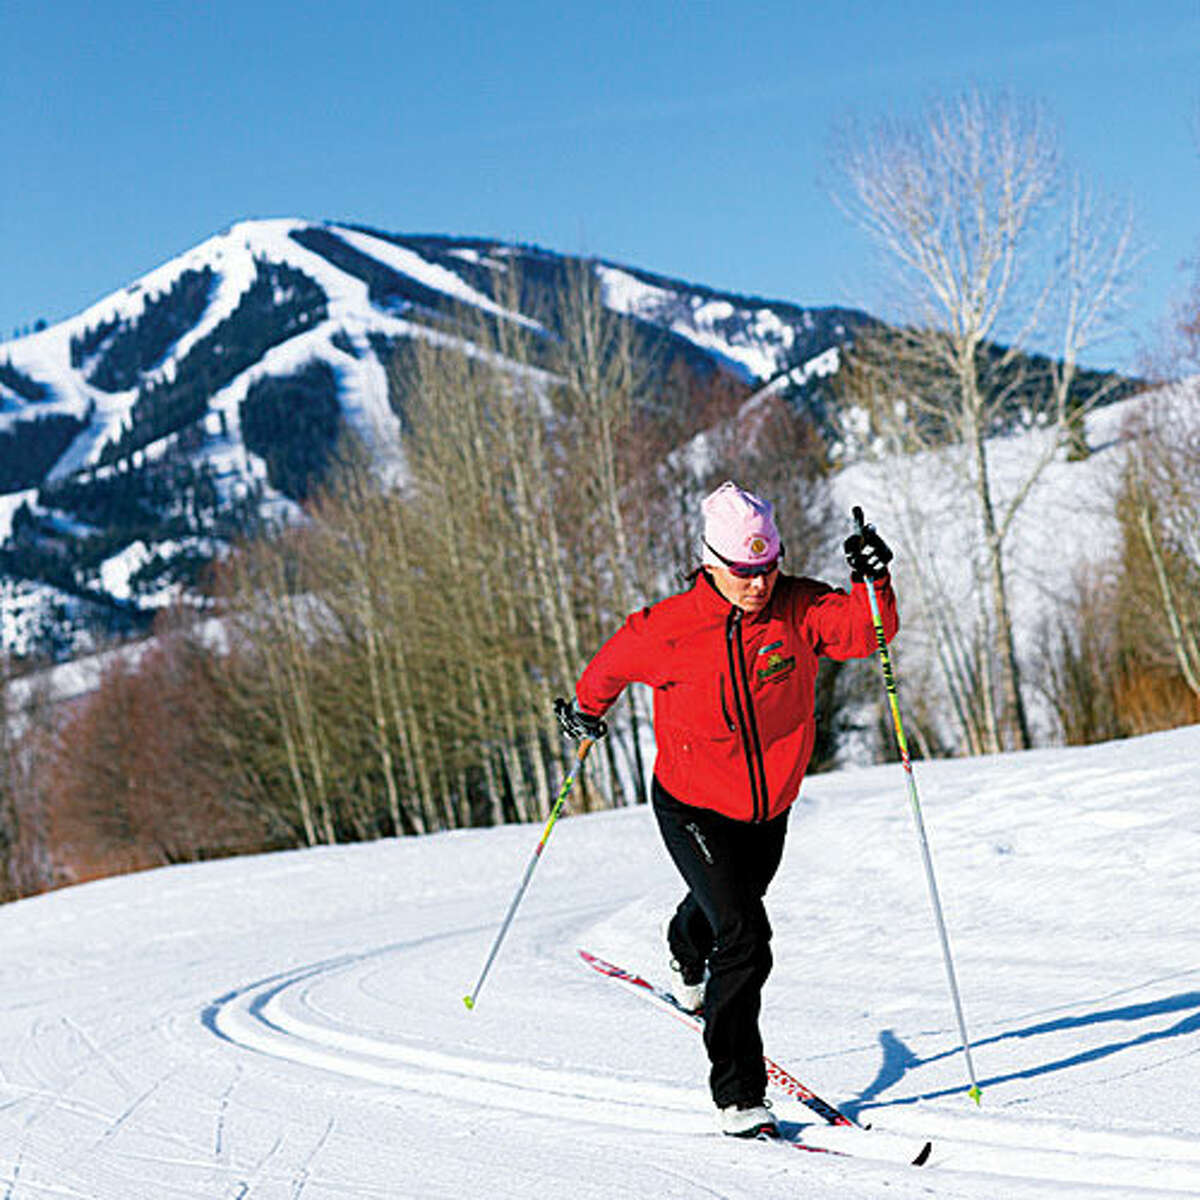 Bald Mountain, ID Idaho's ski paradise, 2 1/2 hours east of Boise, is Bald Mountain (aka Baldy), known for its steep pitch and bone-dry powder. For a hangout alternative to the town of Sun Valley, head to nearby Ketchum for its stylish indie shops, saloons, and restaurants rivaling what you'd find in the big city. Stay: Wake up in one of the three ski-in yurts at Galena Lodge, with your order of freshly baked breakfast muffins delivered to your front flap. From $125; galenalodge.com